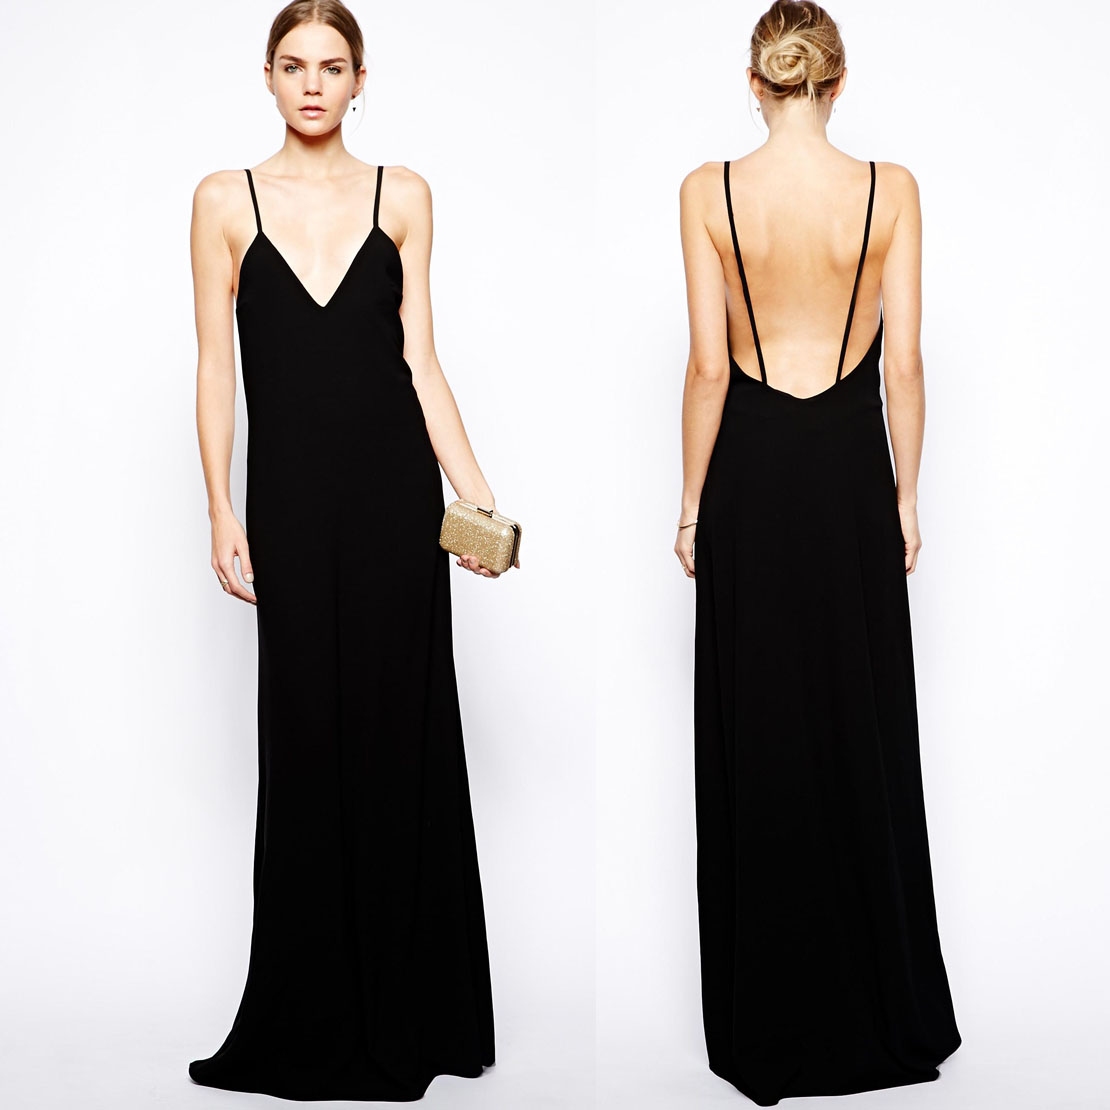 Collection Black Maxi Dress Low Back Pictures - Reikian